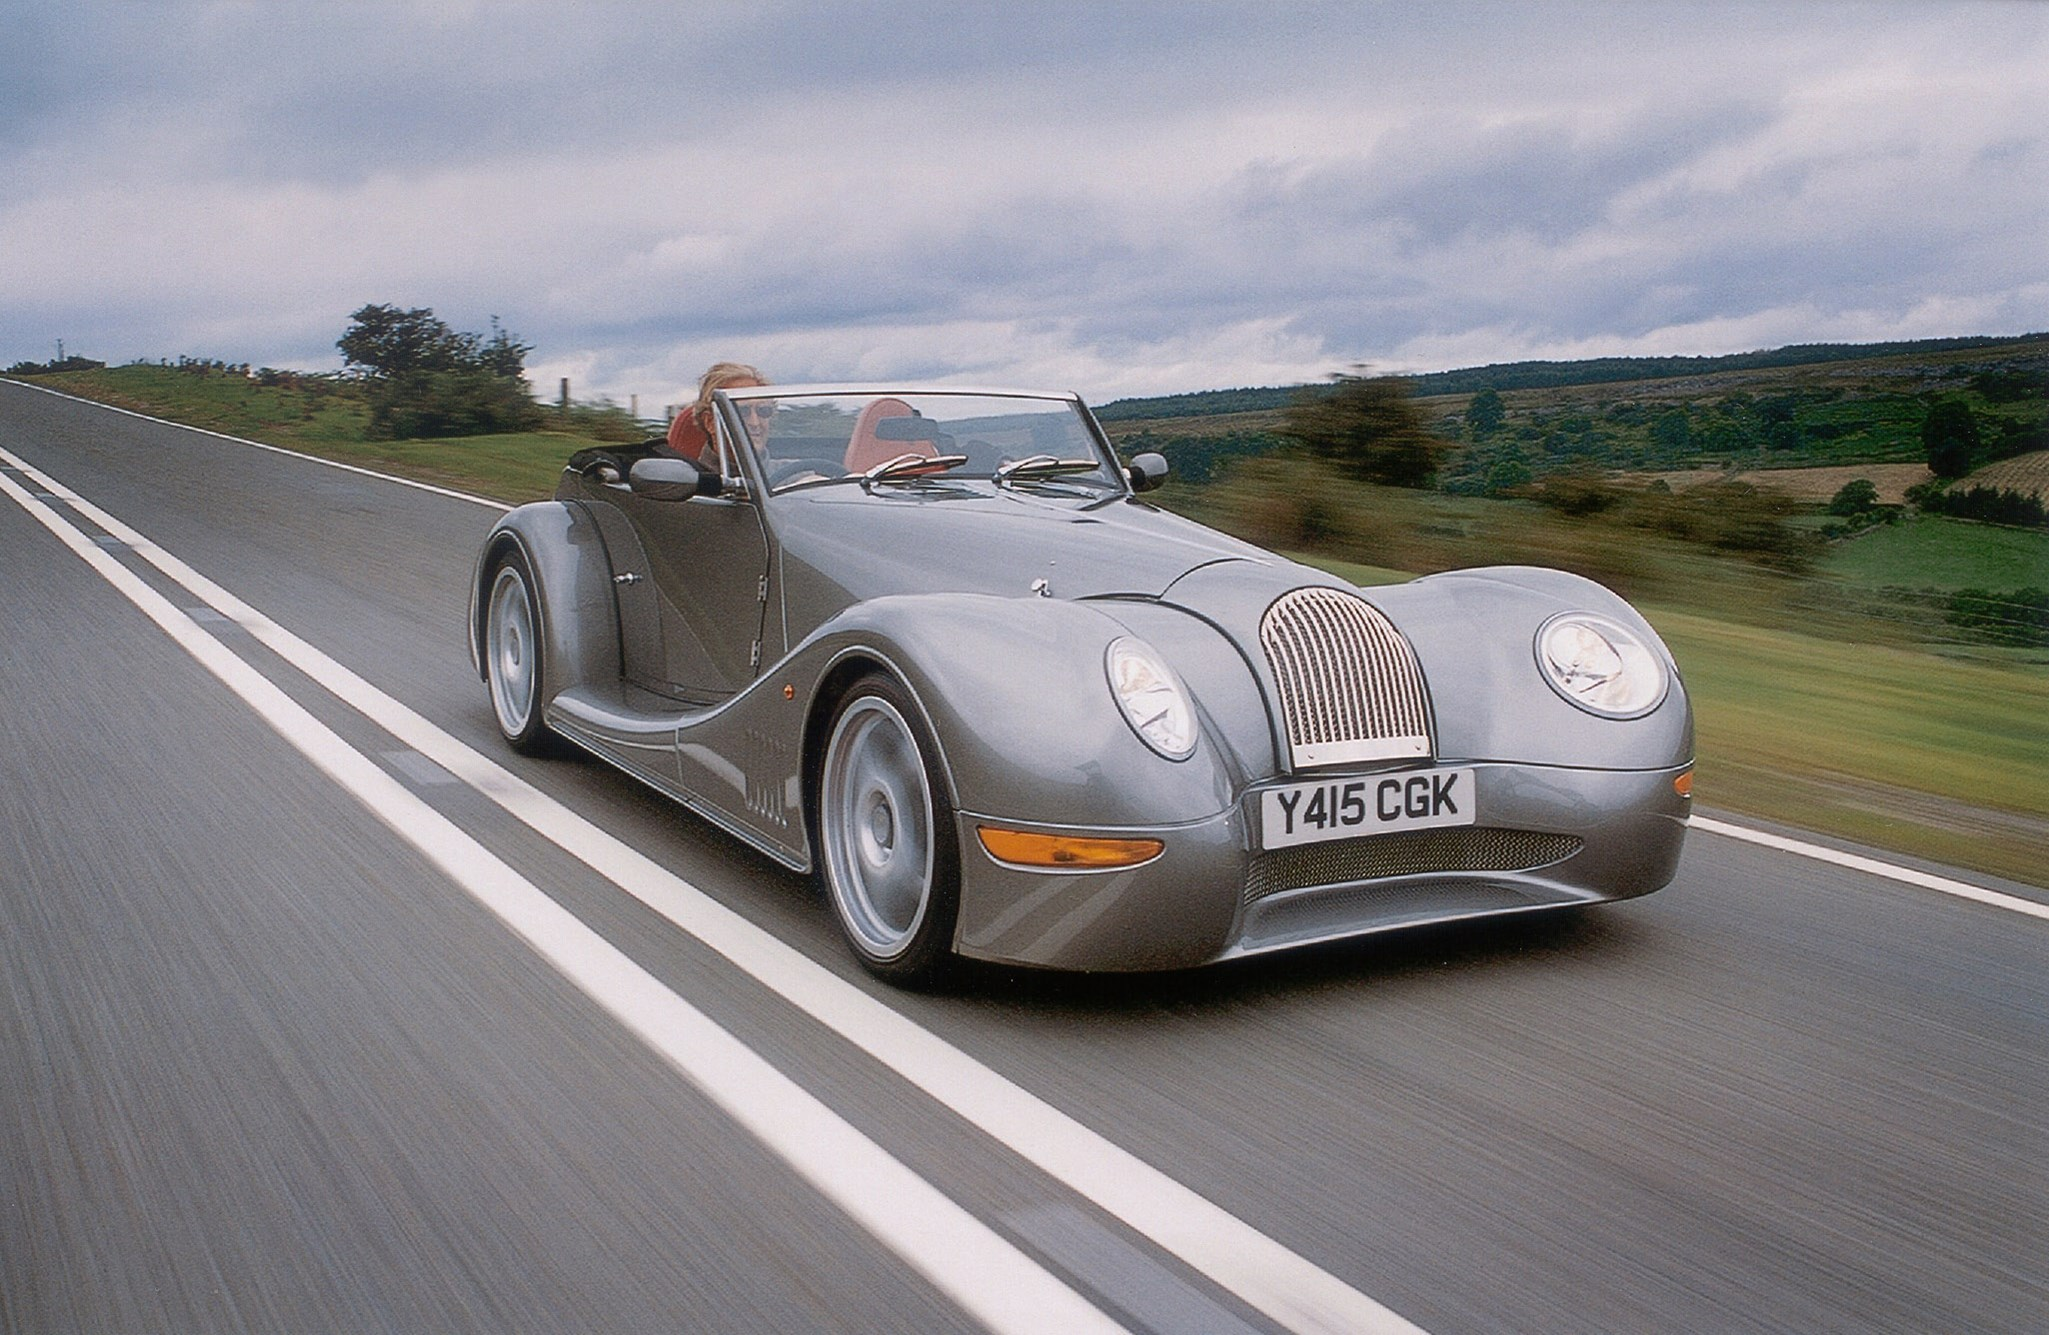 Morgan aero 8 by car magazine for The morgan